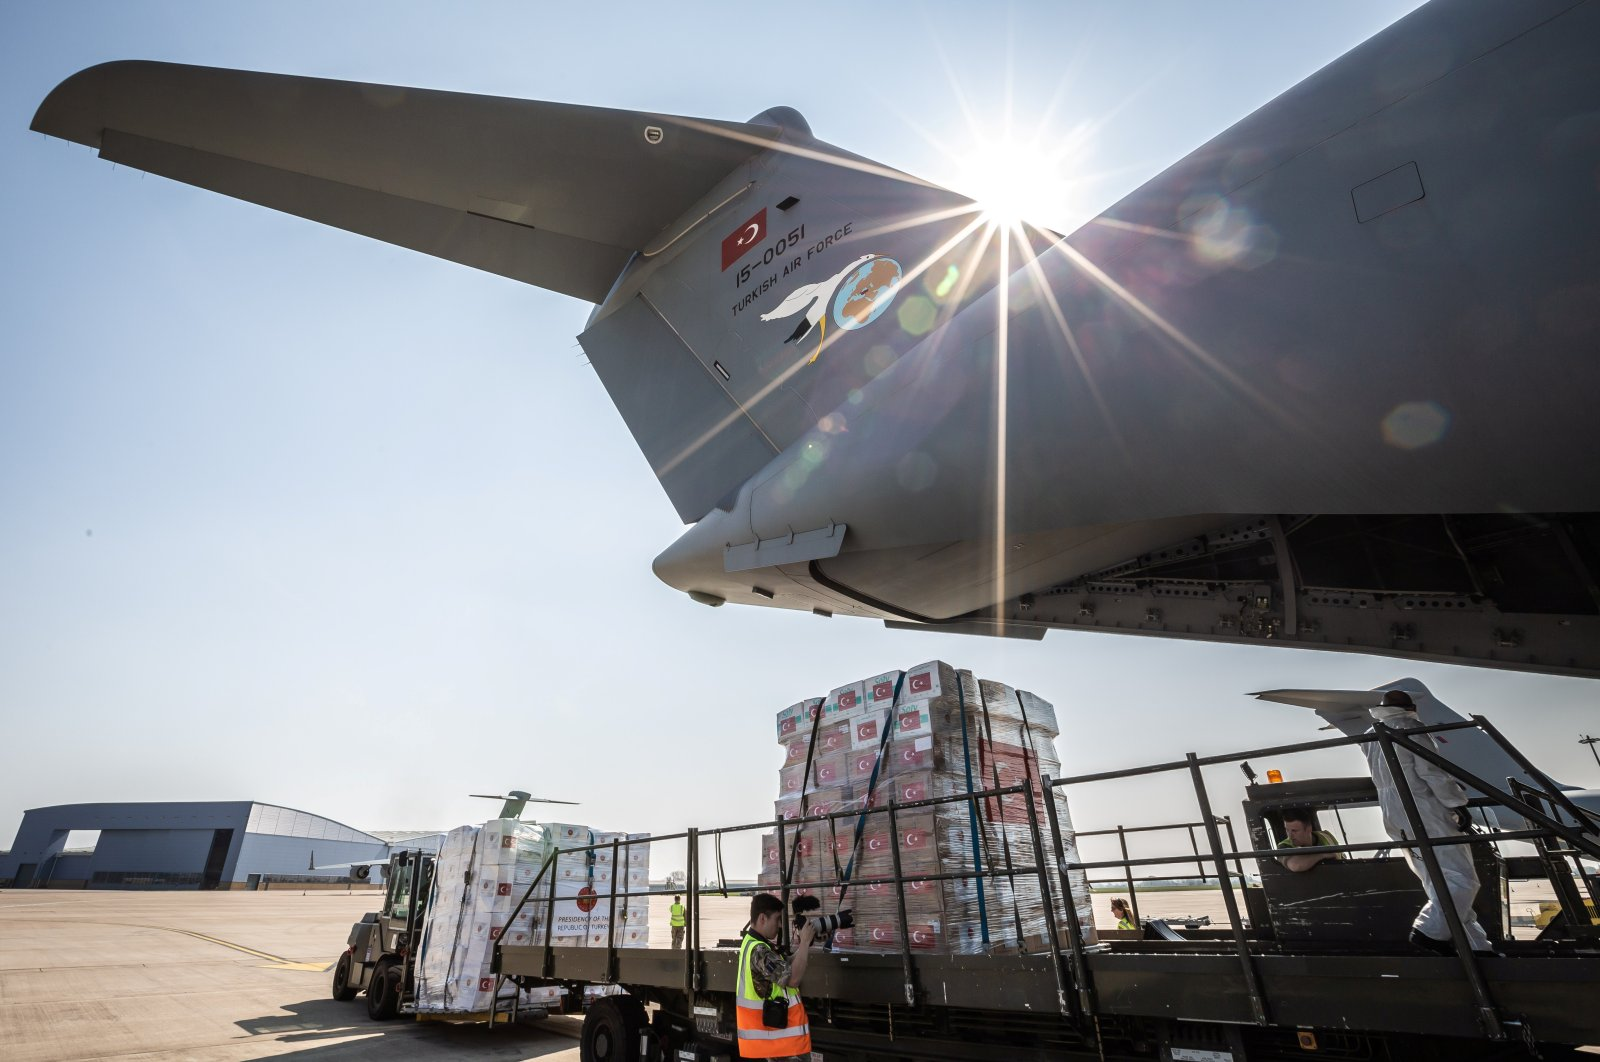 Crucial supplies of personal protective equipment (PPE) for medical staff have been delivered from Turkey to a Royal Air Force base for distribution around the country, amid the coronavirus outbreak, in Carterton, U.K., April 10, 2020. (Handout via Reuters)